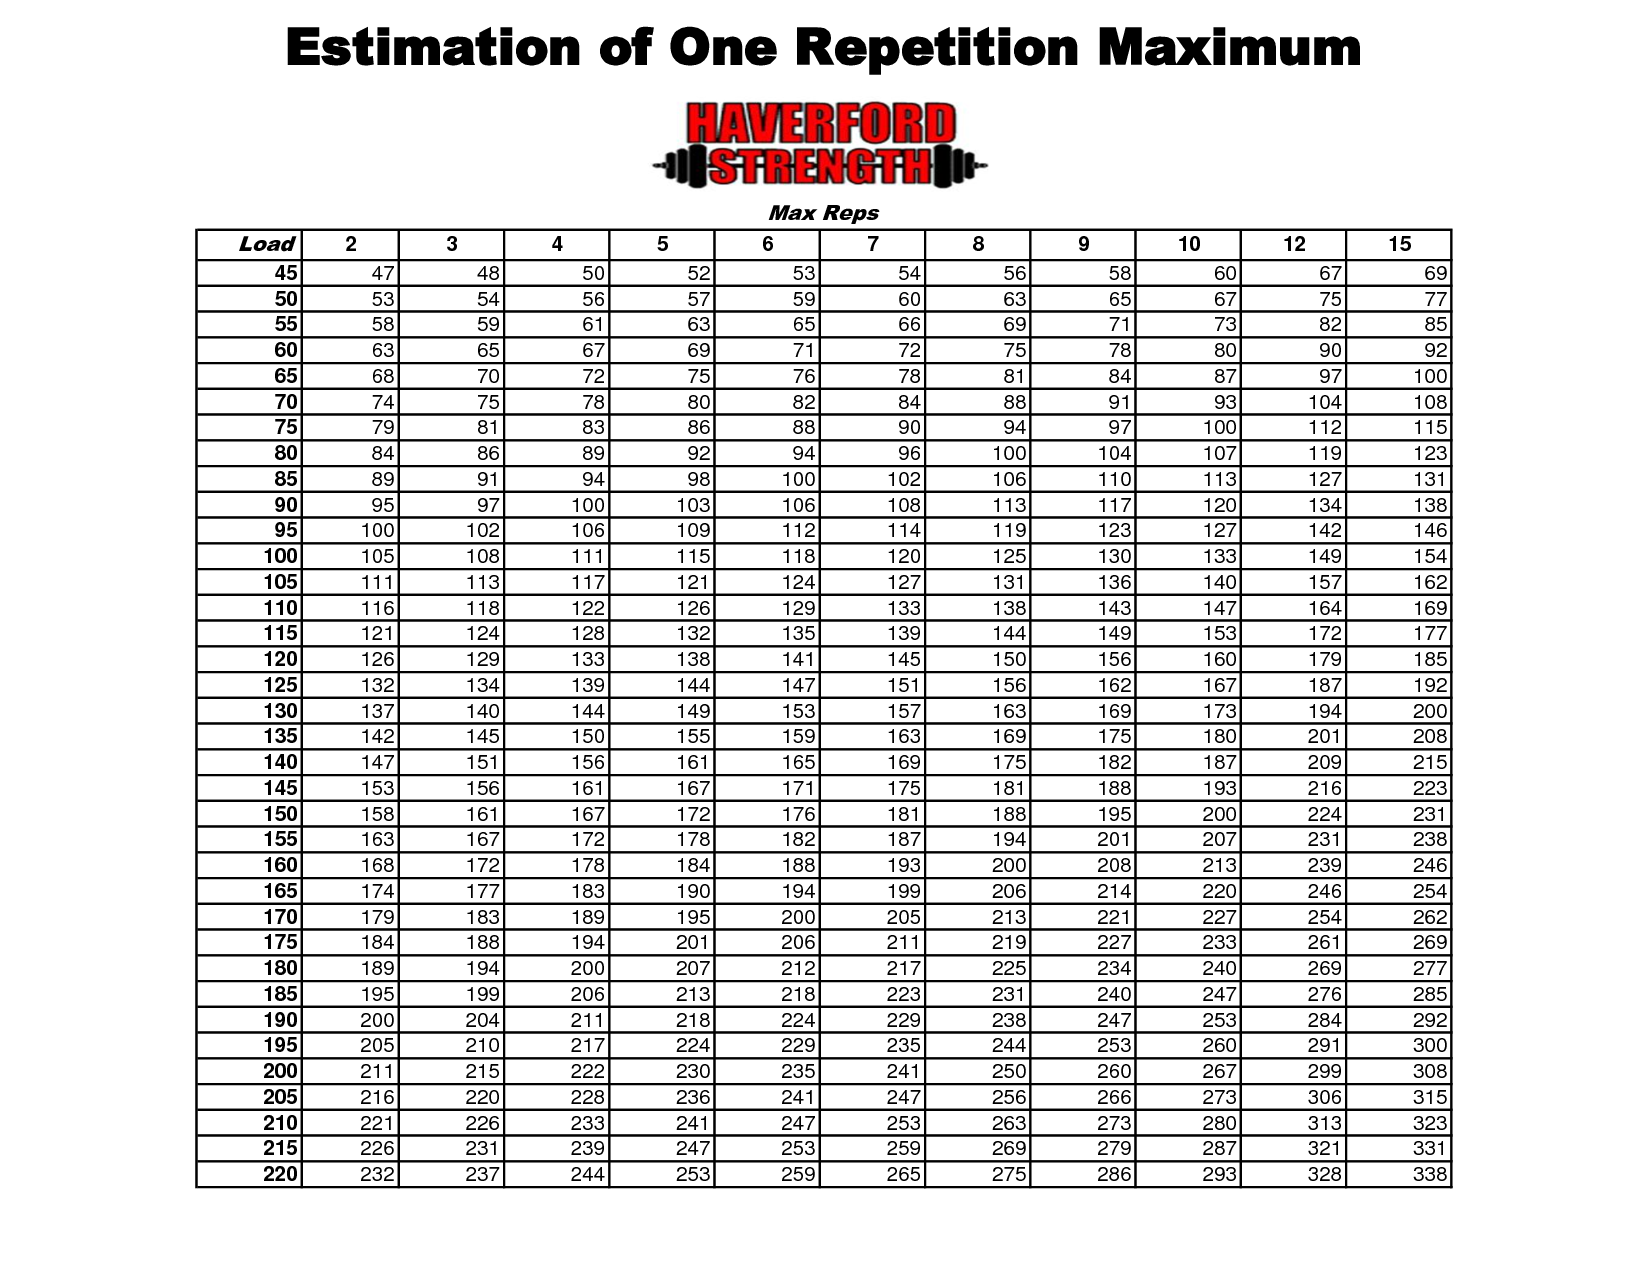 Printable rep max chart estimation also can   get enough rh pinterest